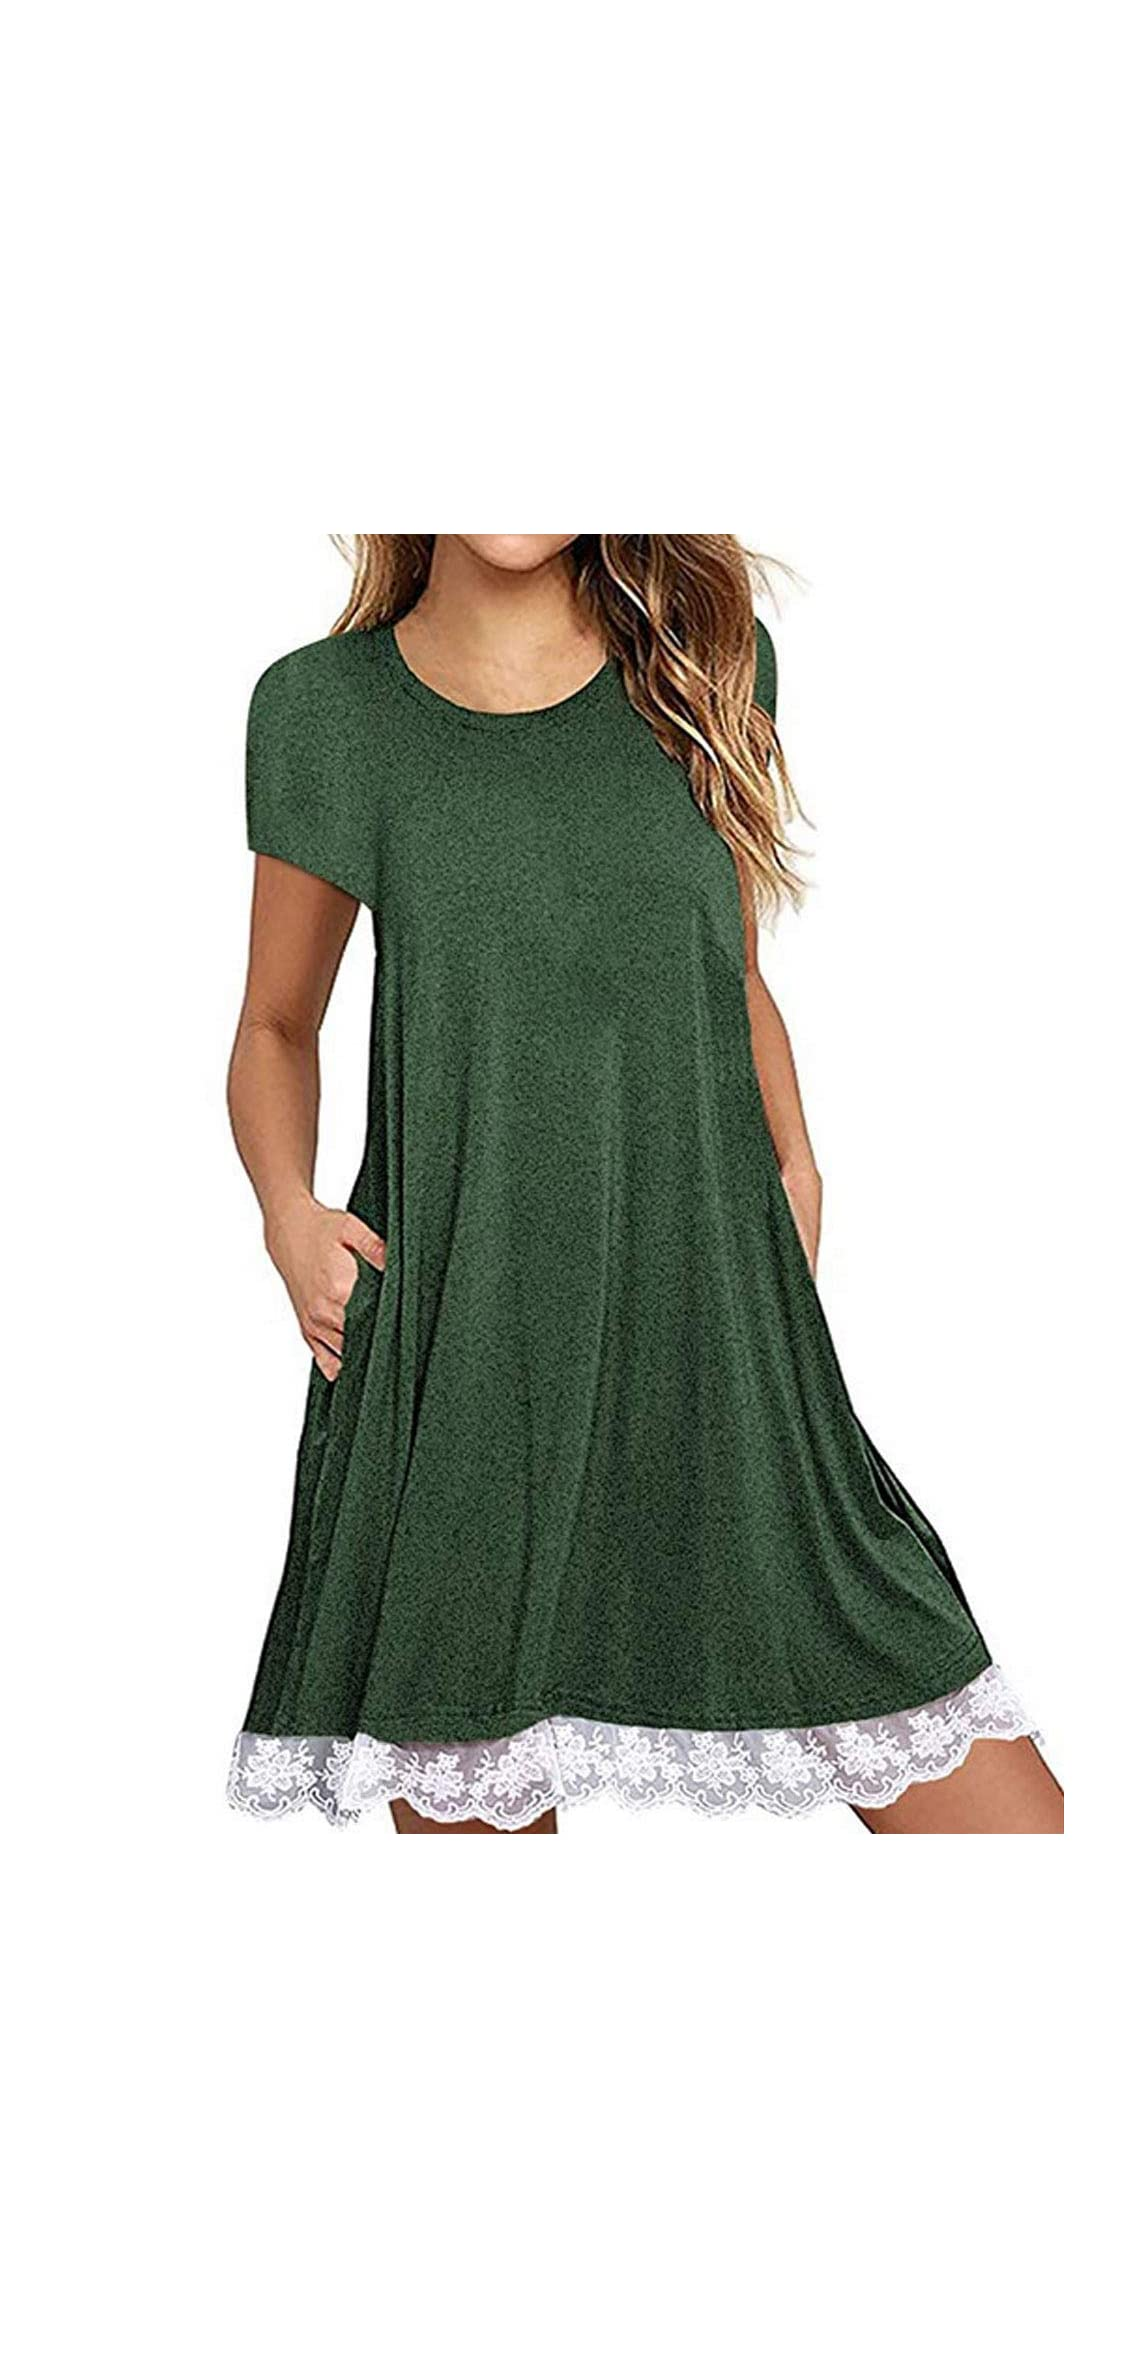 Women's Summer Fall Short Sleeve/long Sleeve Lace Hem